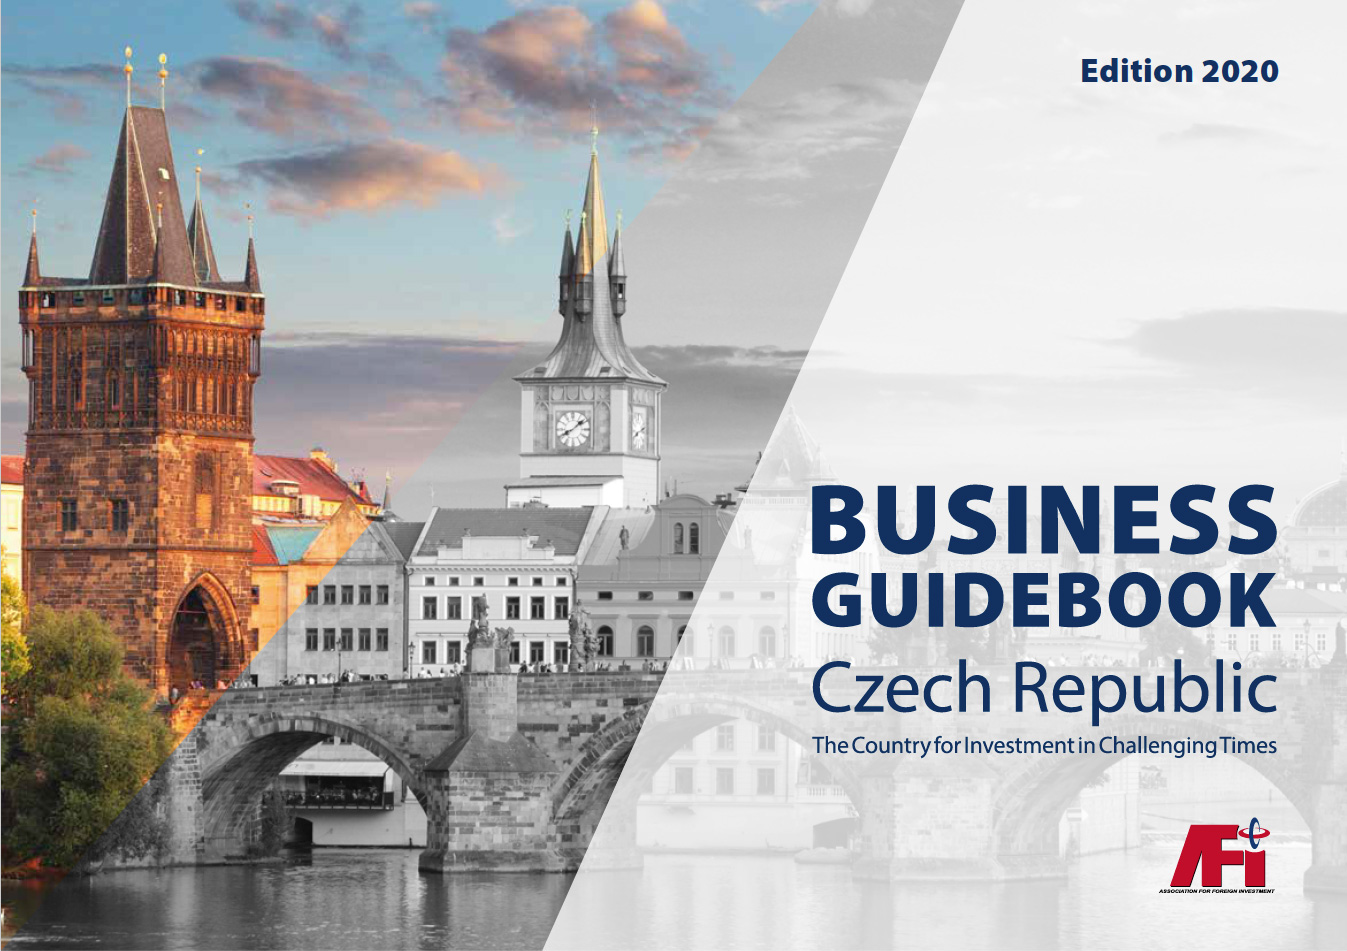 BusinessGuideBook